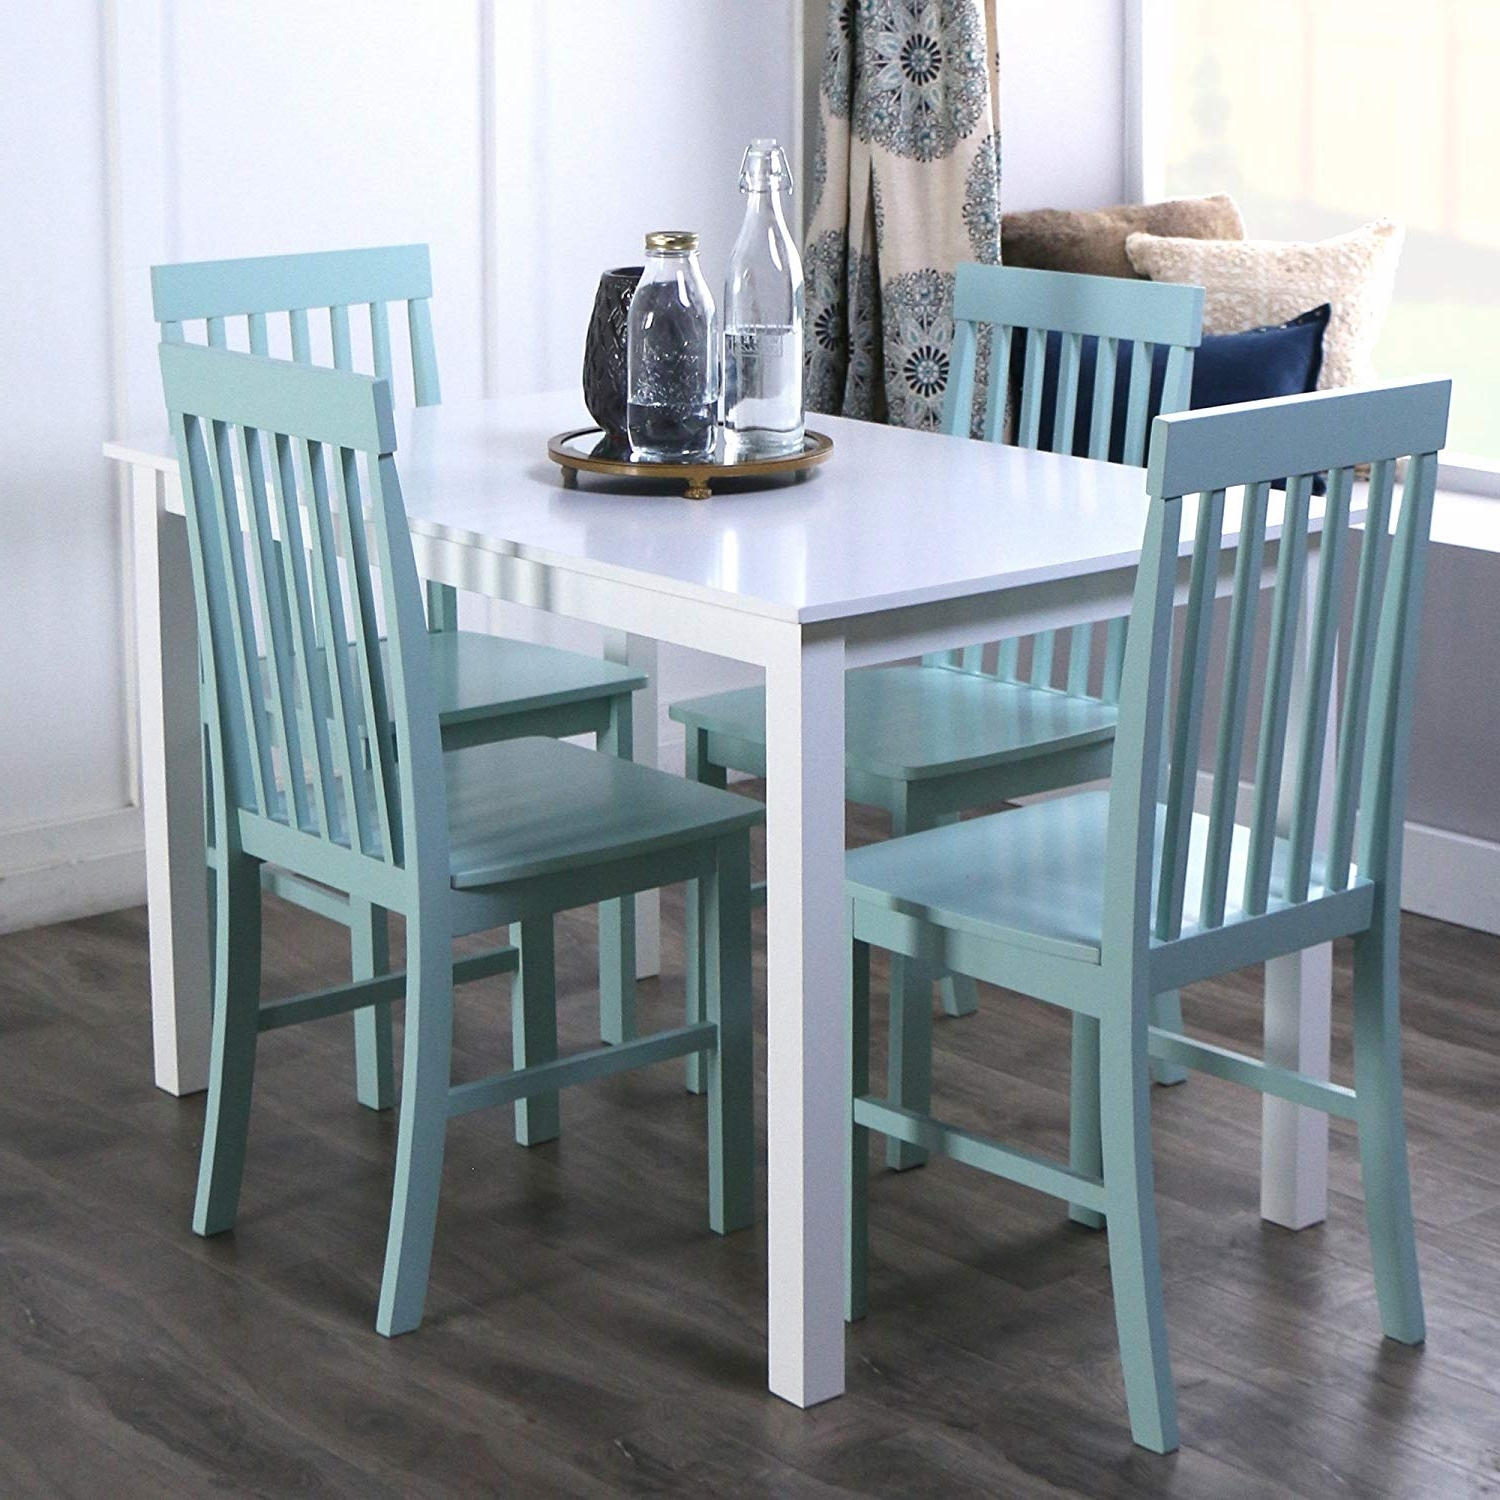 Current Palazzo 3 Piece Dining Table Sets In Amazon – We Furniture 5 Piece Chic Wood Dining Set, Green (View 20 of 25)